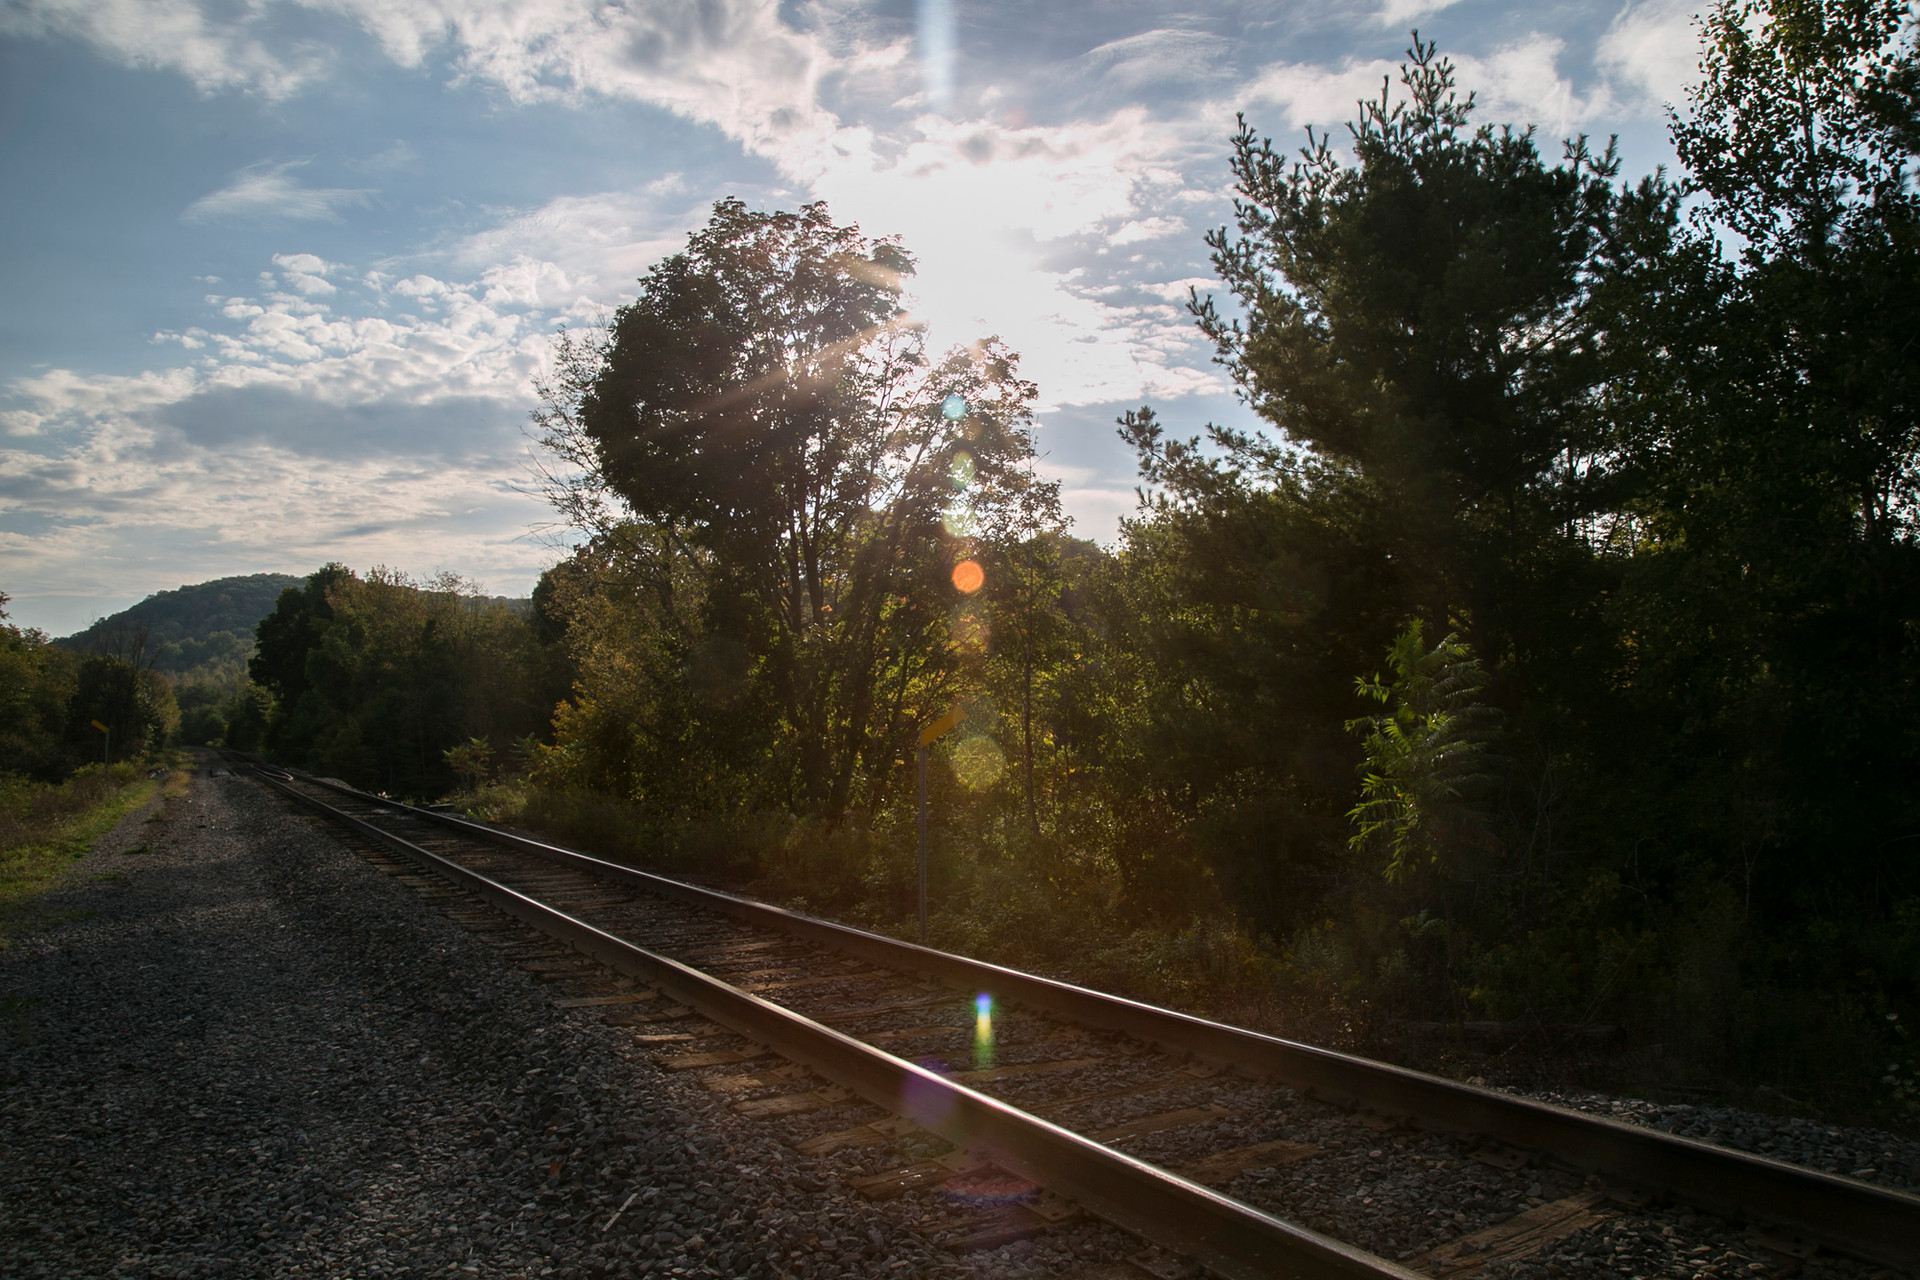 Sun on the tracks